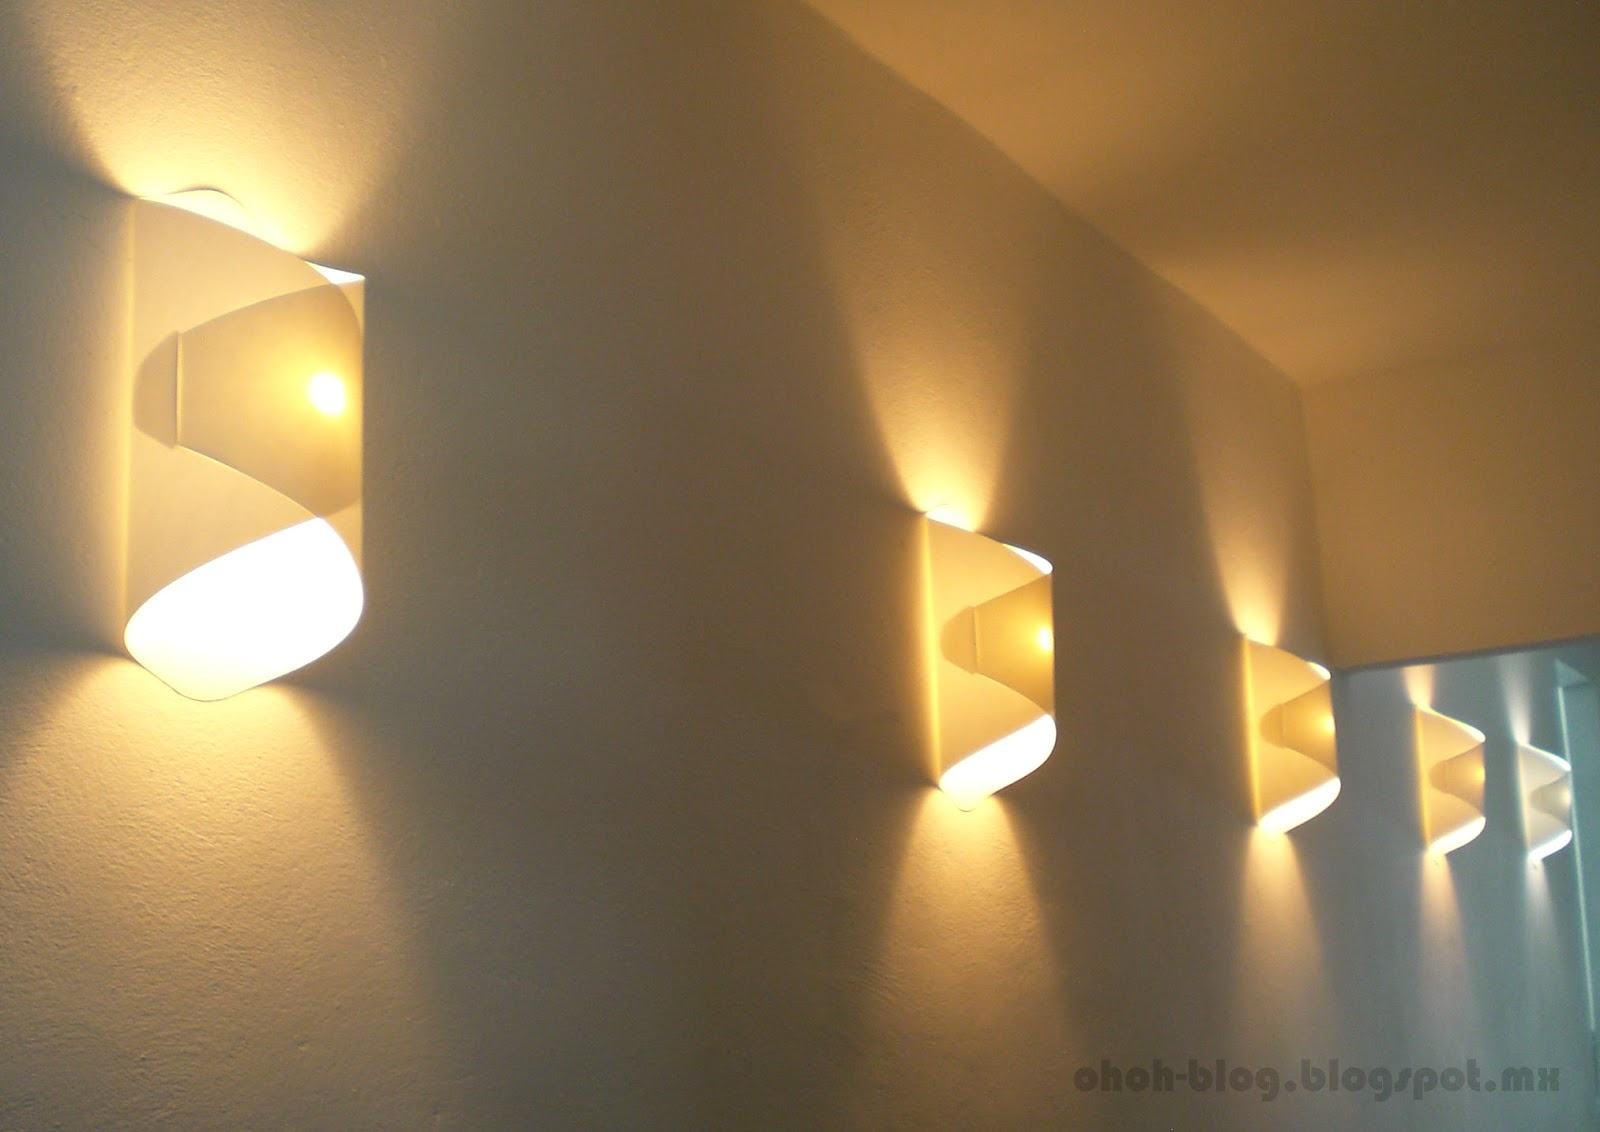 Diy paper lamp lampara de papel ohoh blog - Lamparas para la pared ...